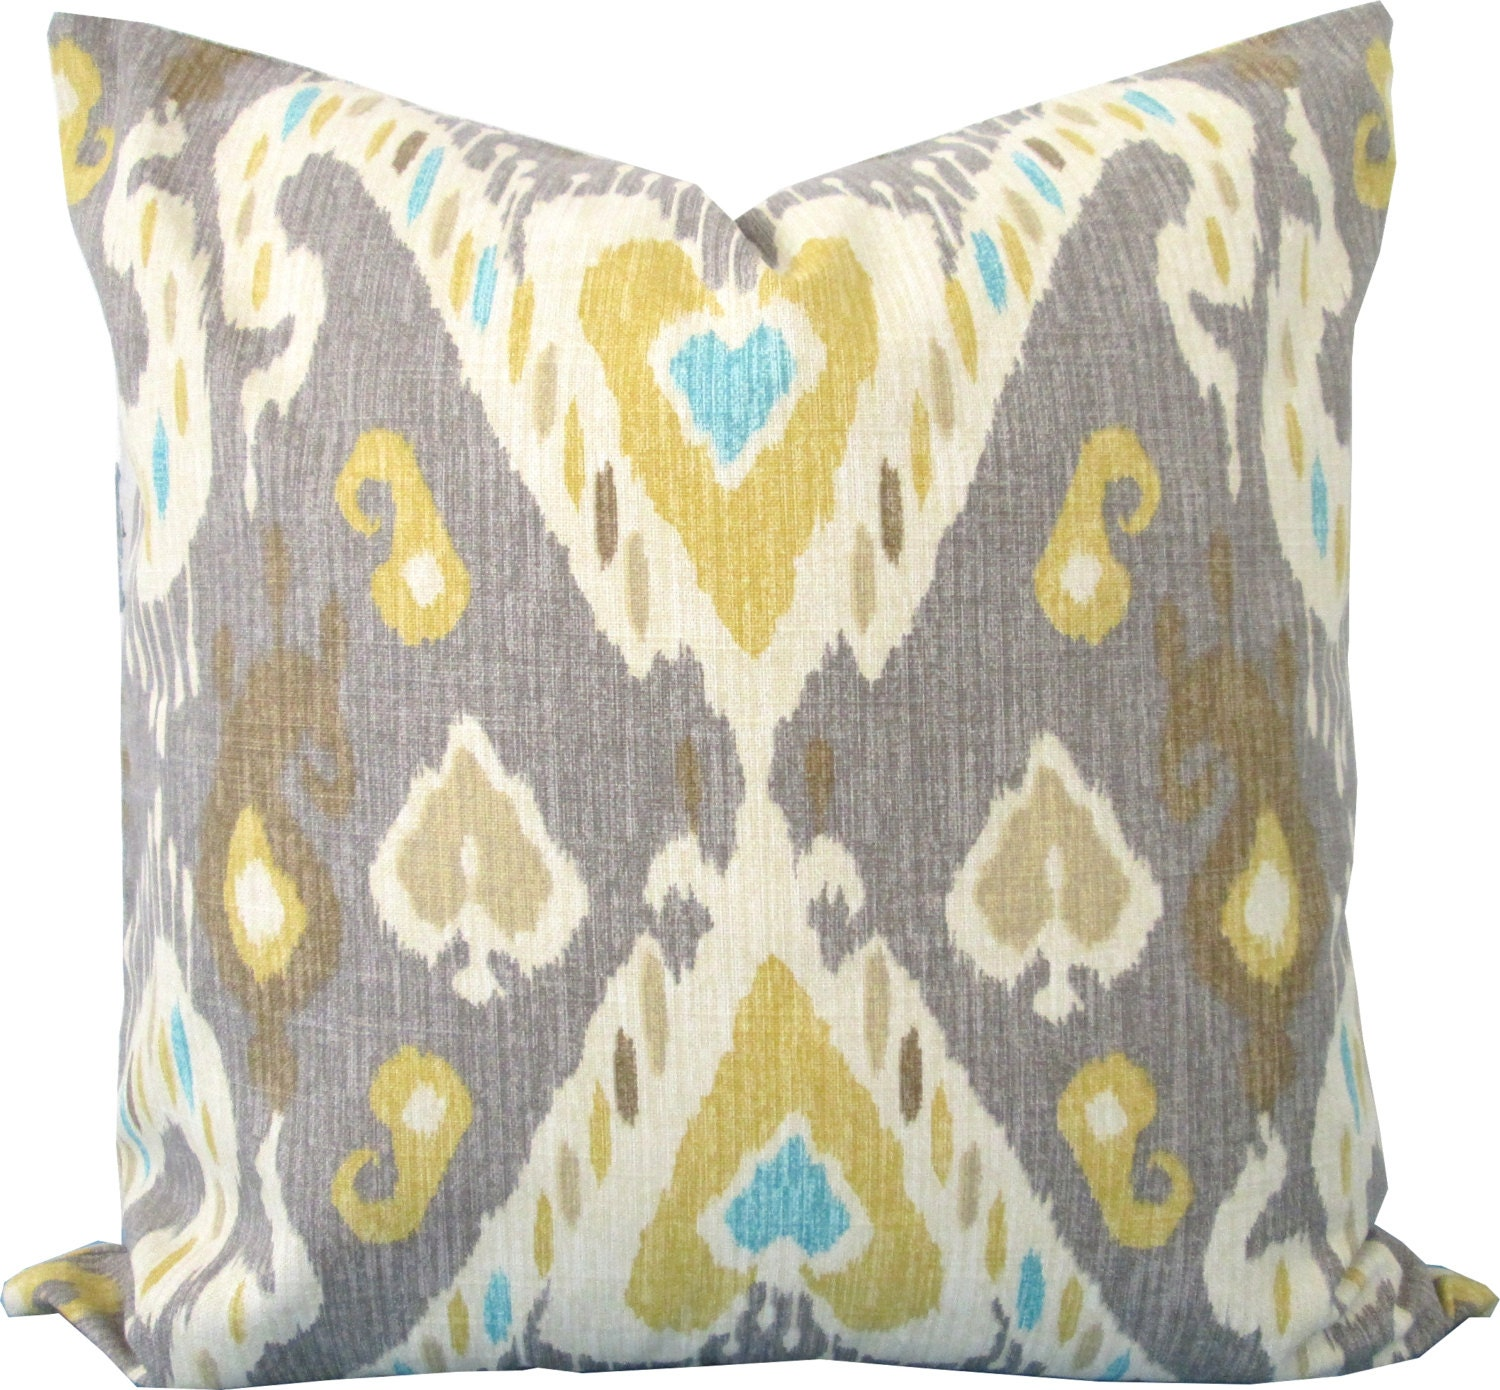 Throw Pillows Groupon : Yellow and Gray Ikat Decorative Pillow Cover Accent Pillow